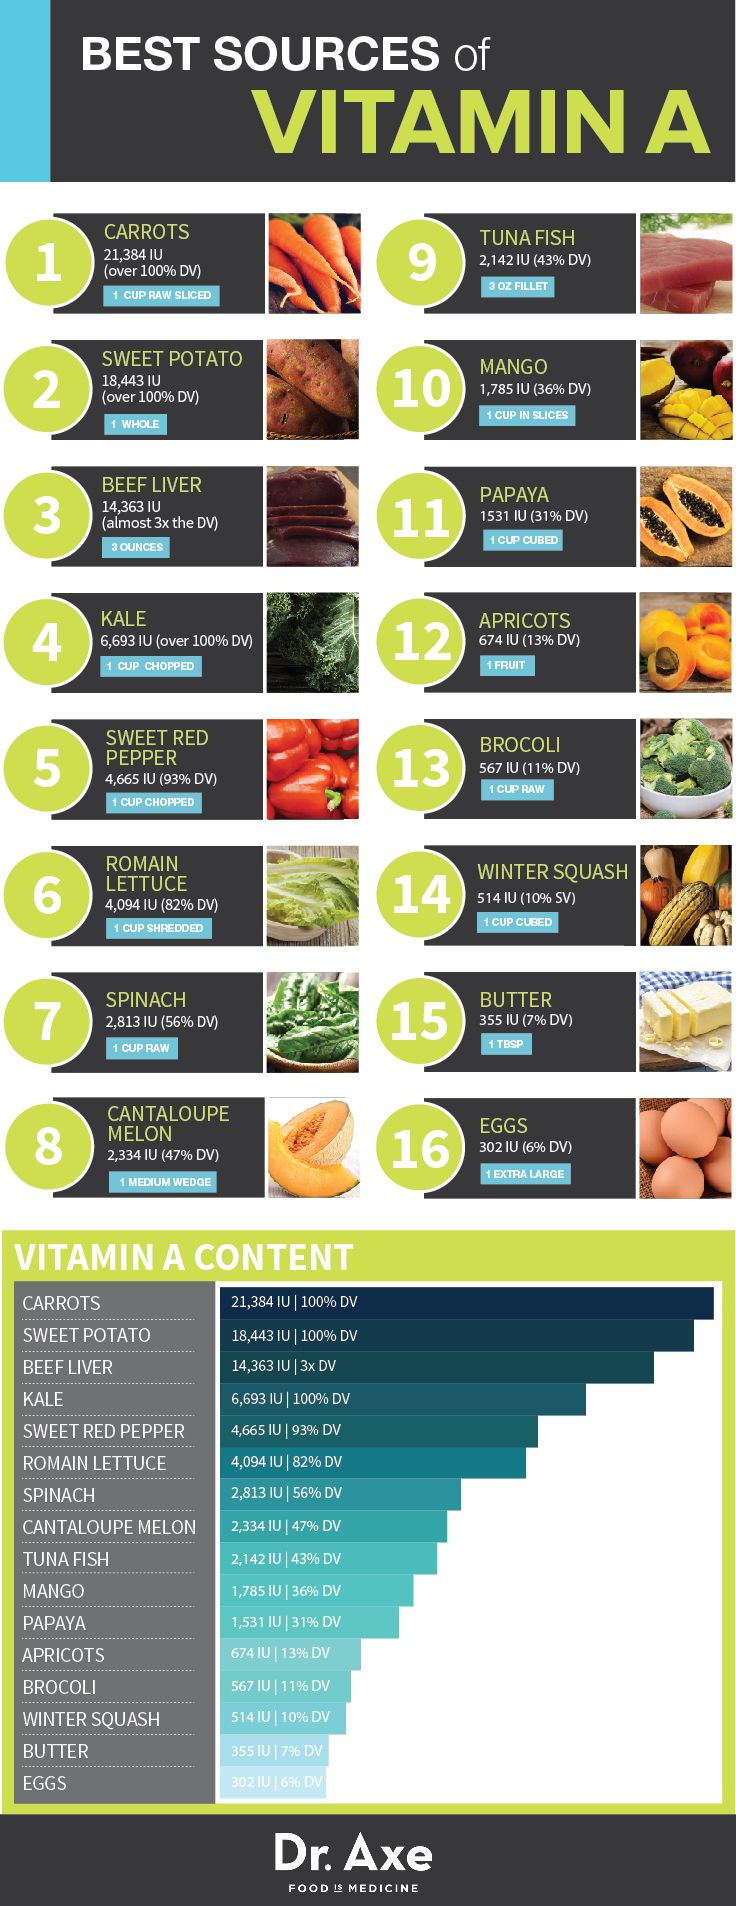 Vitamin A Benefits Sources Amp Side Effects Health And